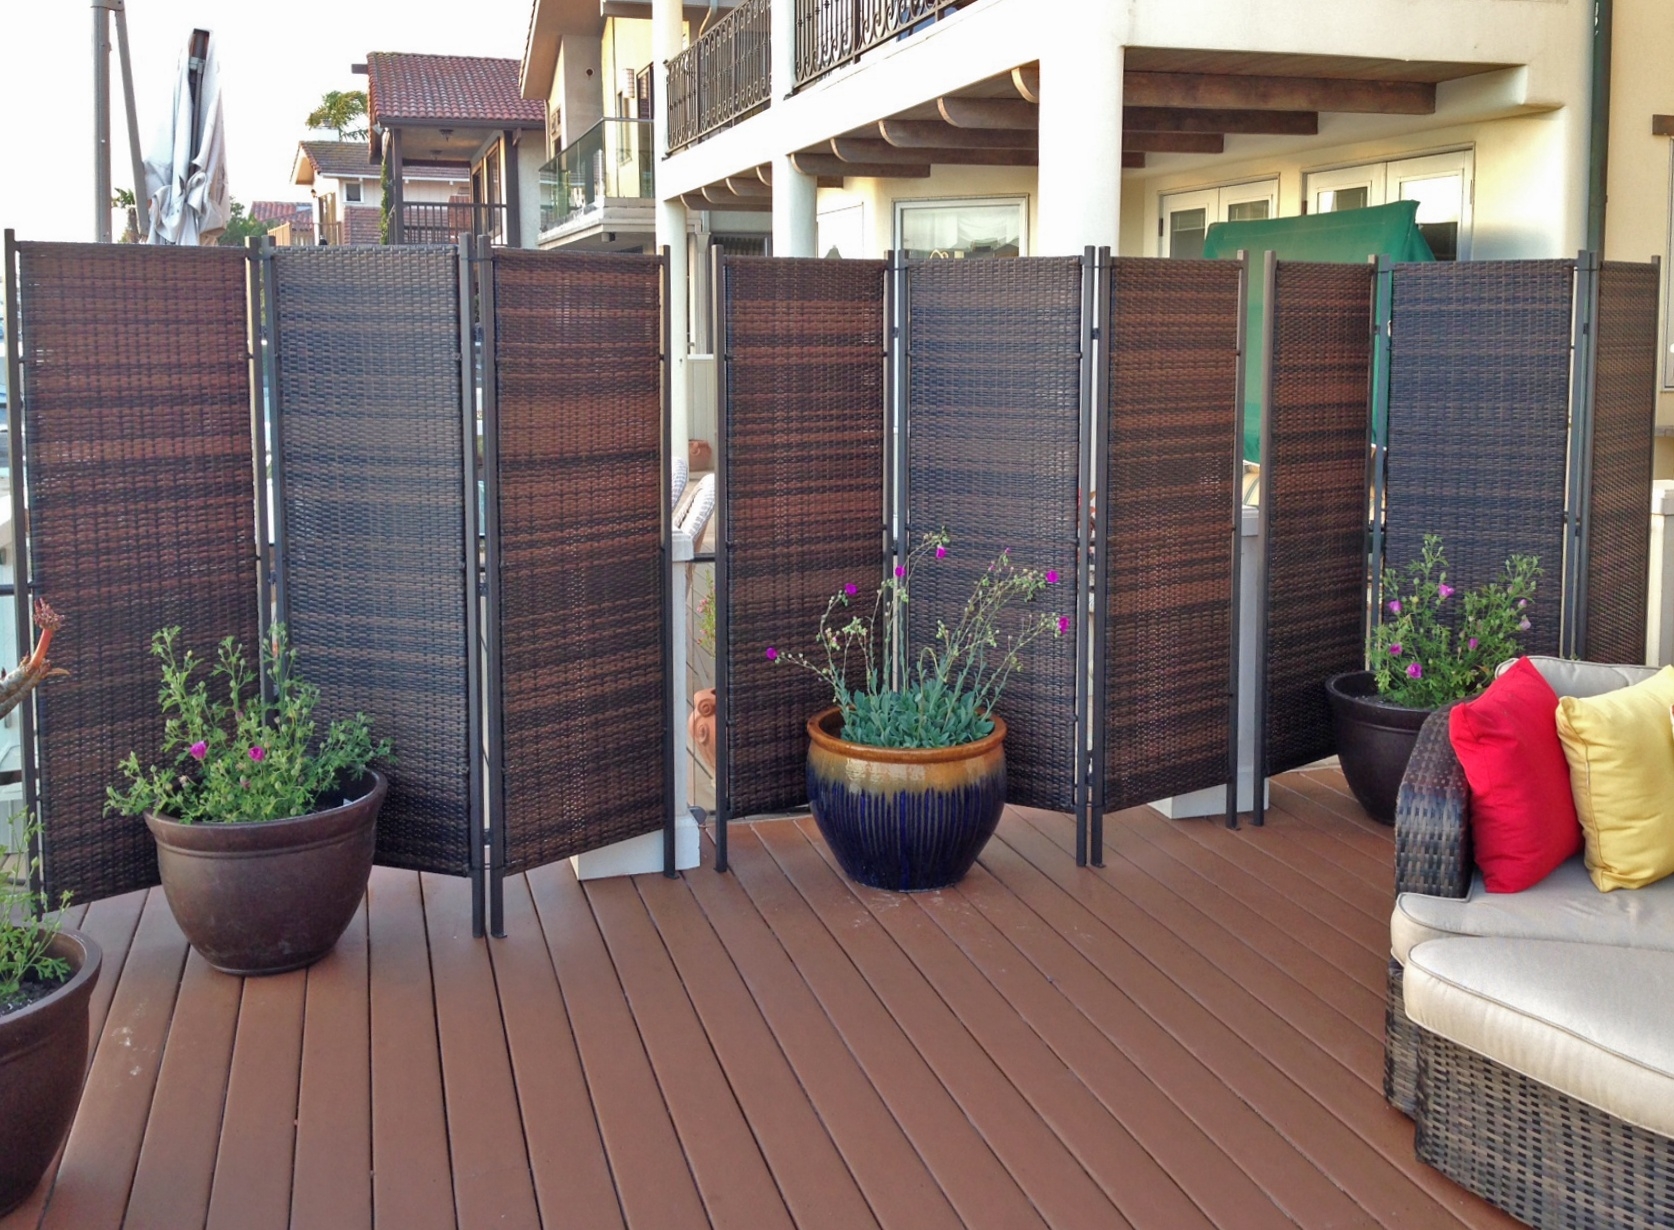 More privacy for your deck or patio amazing deck for Outdoor privacy panels for decks